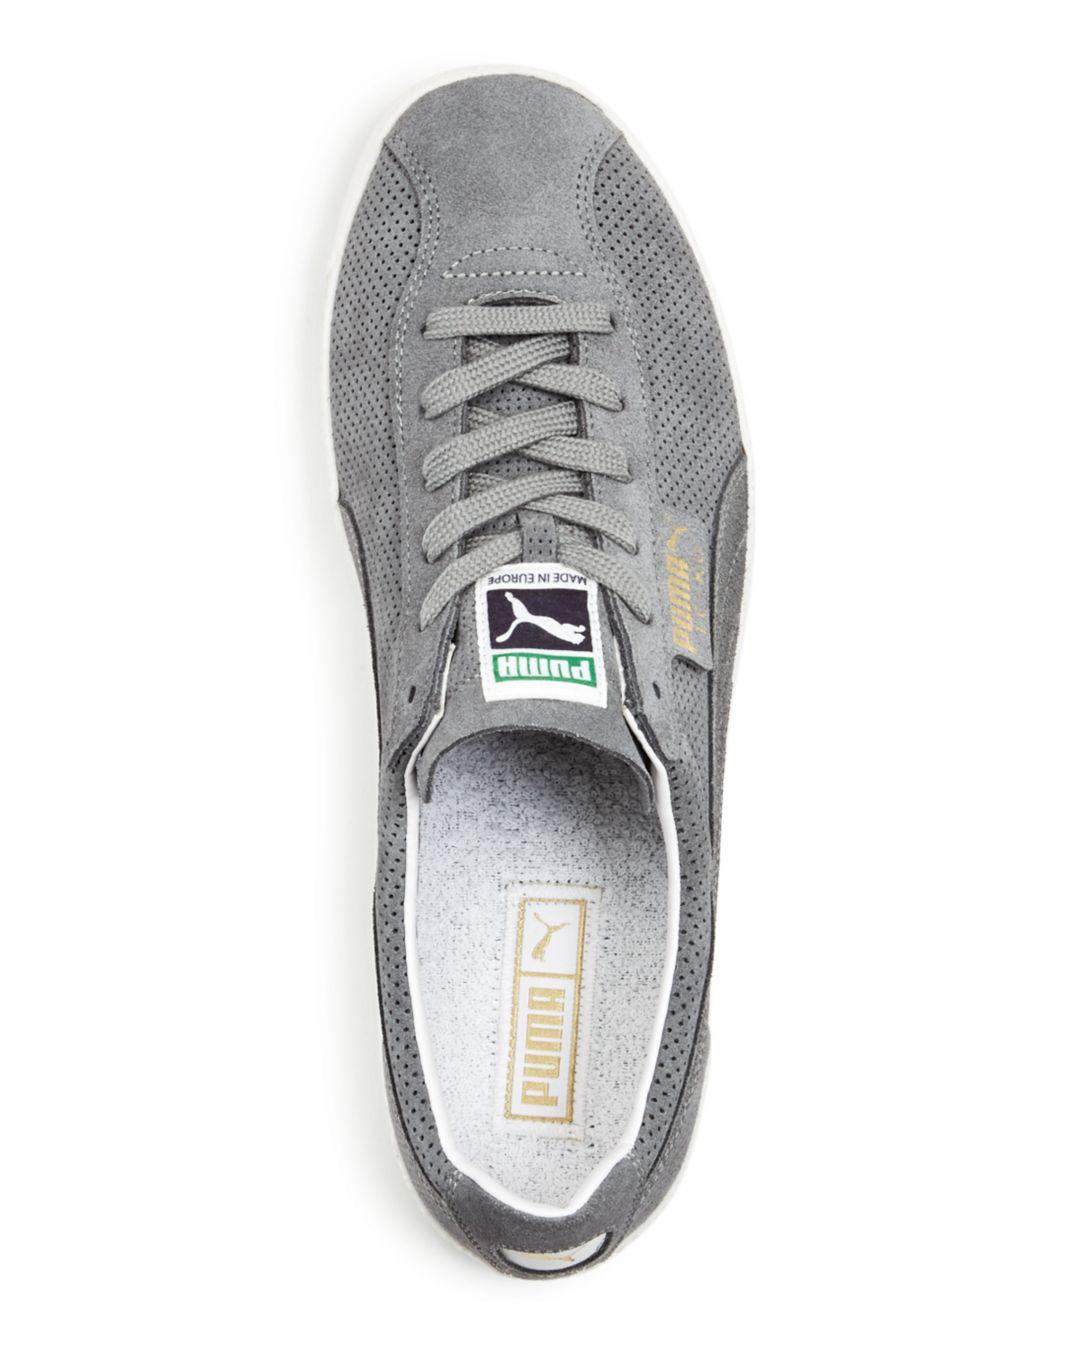 e2707622d0e Lyst - PUMA Men s Te-ku Summer Perforated Suede Lace Up Sneakers in Gray  for Men